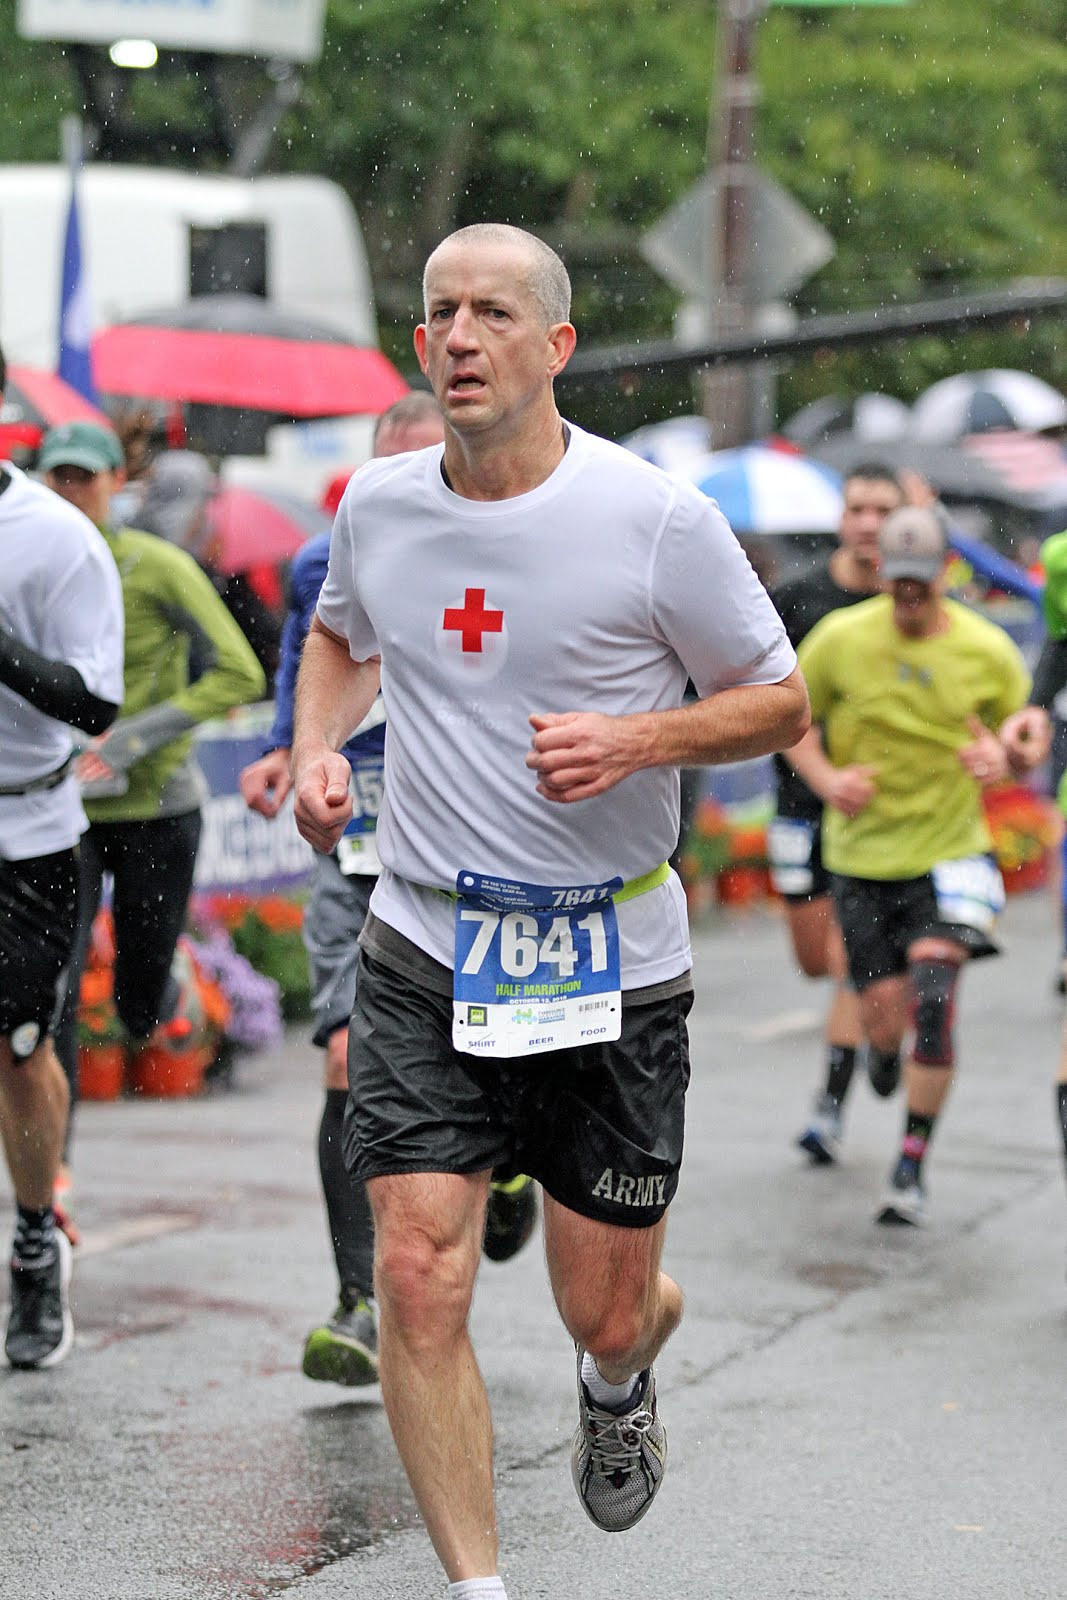 American Red Cross Volunteer runs to raise funds for the American Red Cross